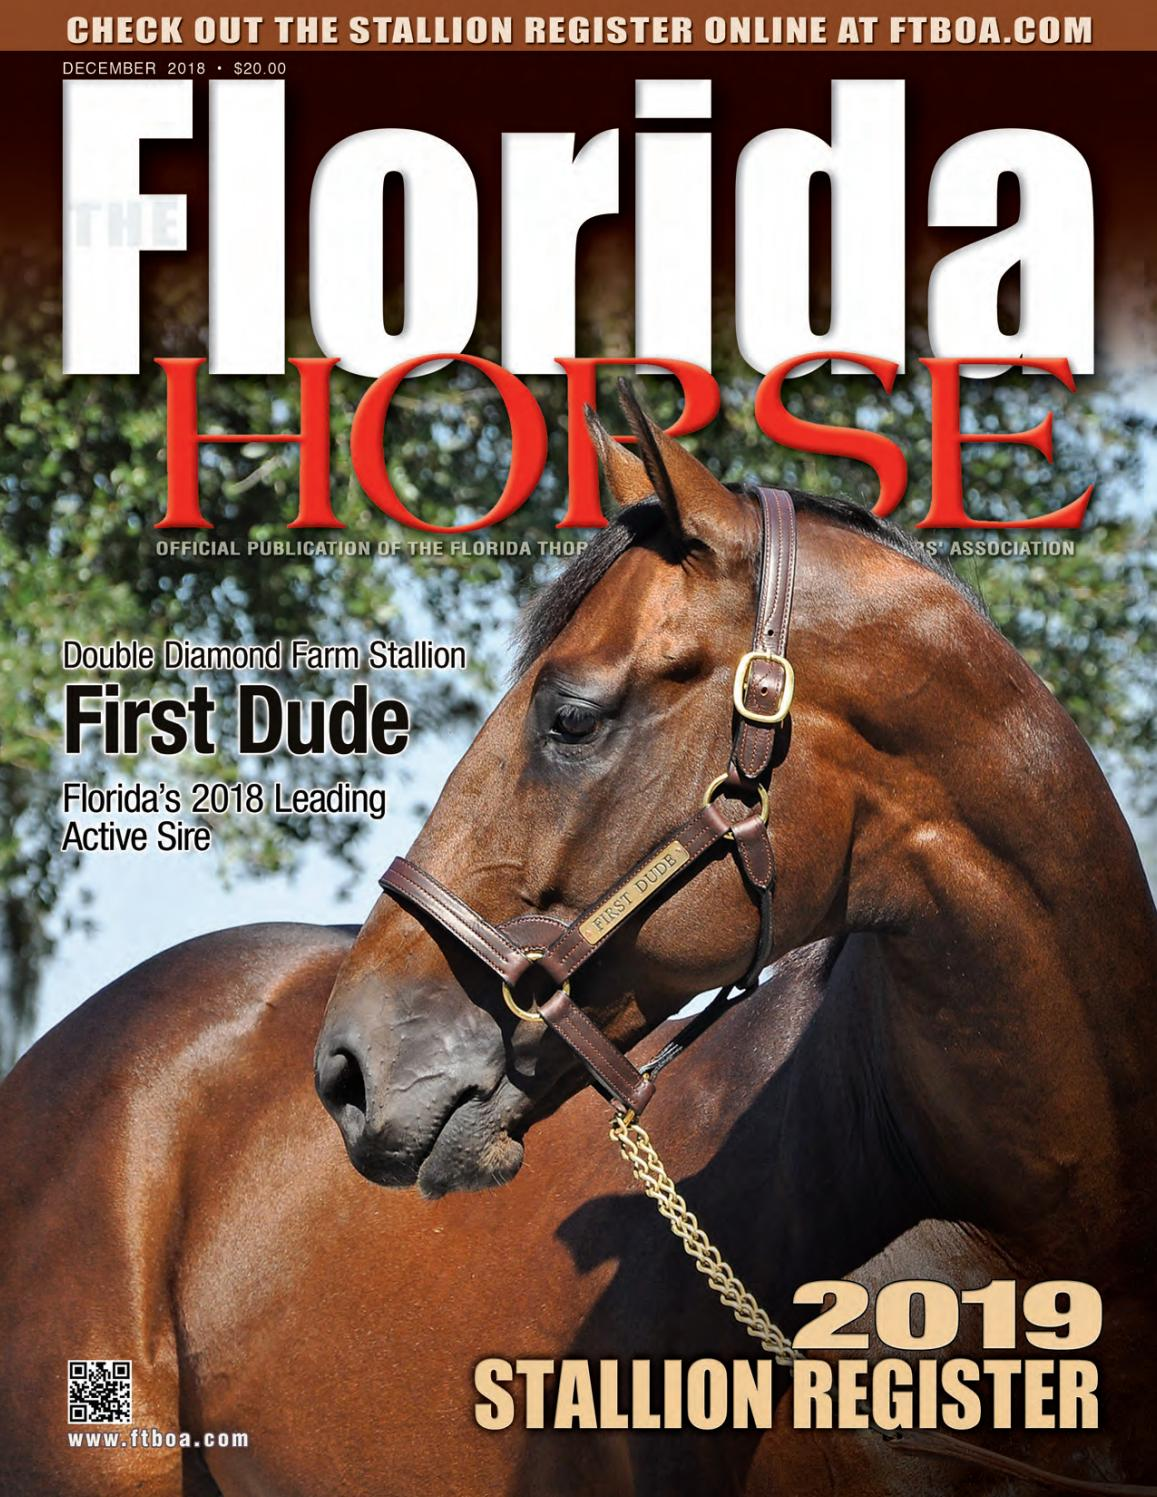 Roxy Bar Vasco Florida Horse 2019 Stallion Register By Florida Equine